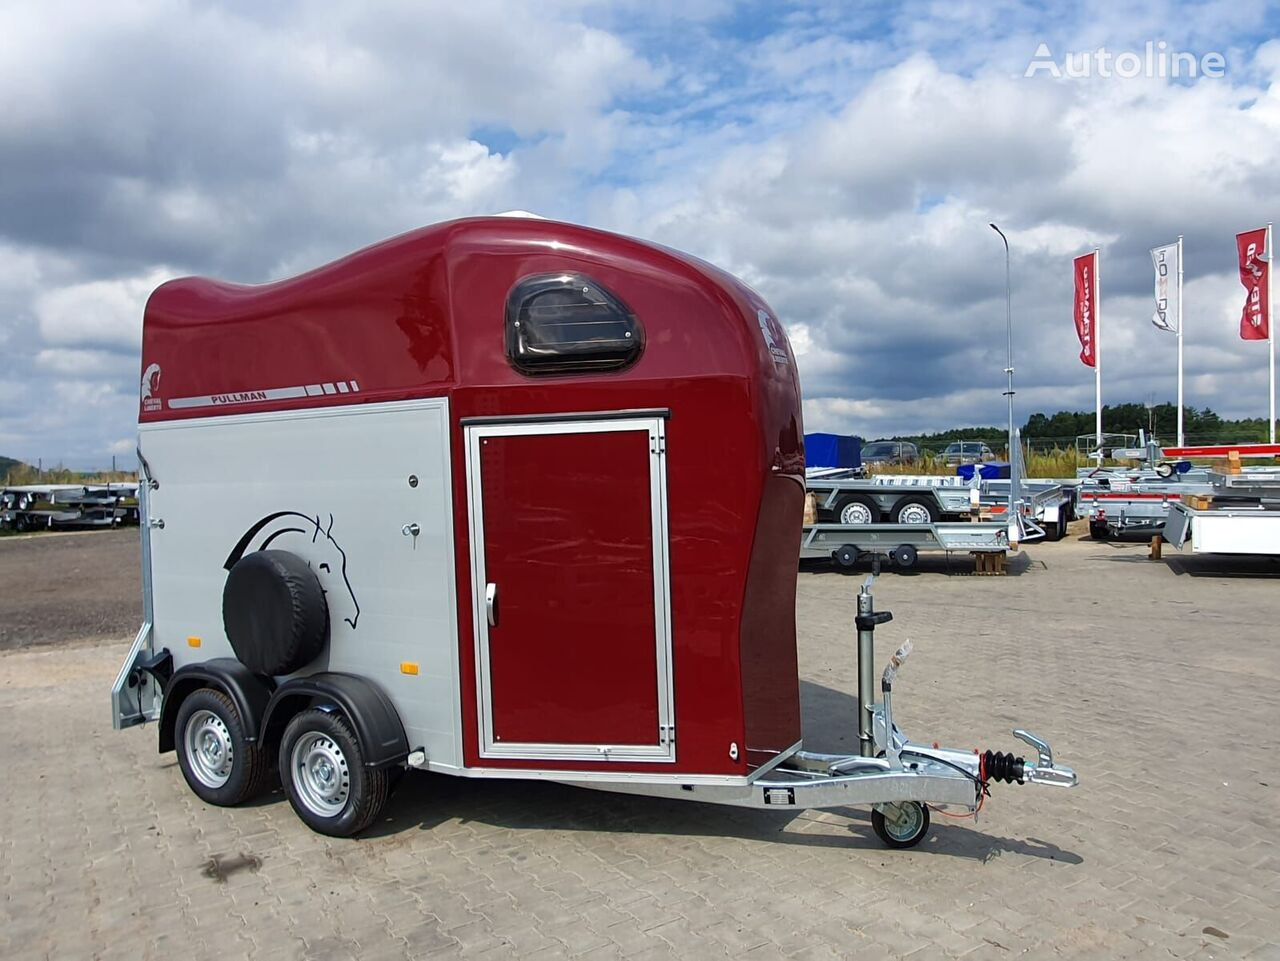 new Cheval liberte Gold 1 one horse trailer  horse trailer